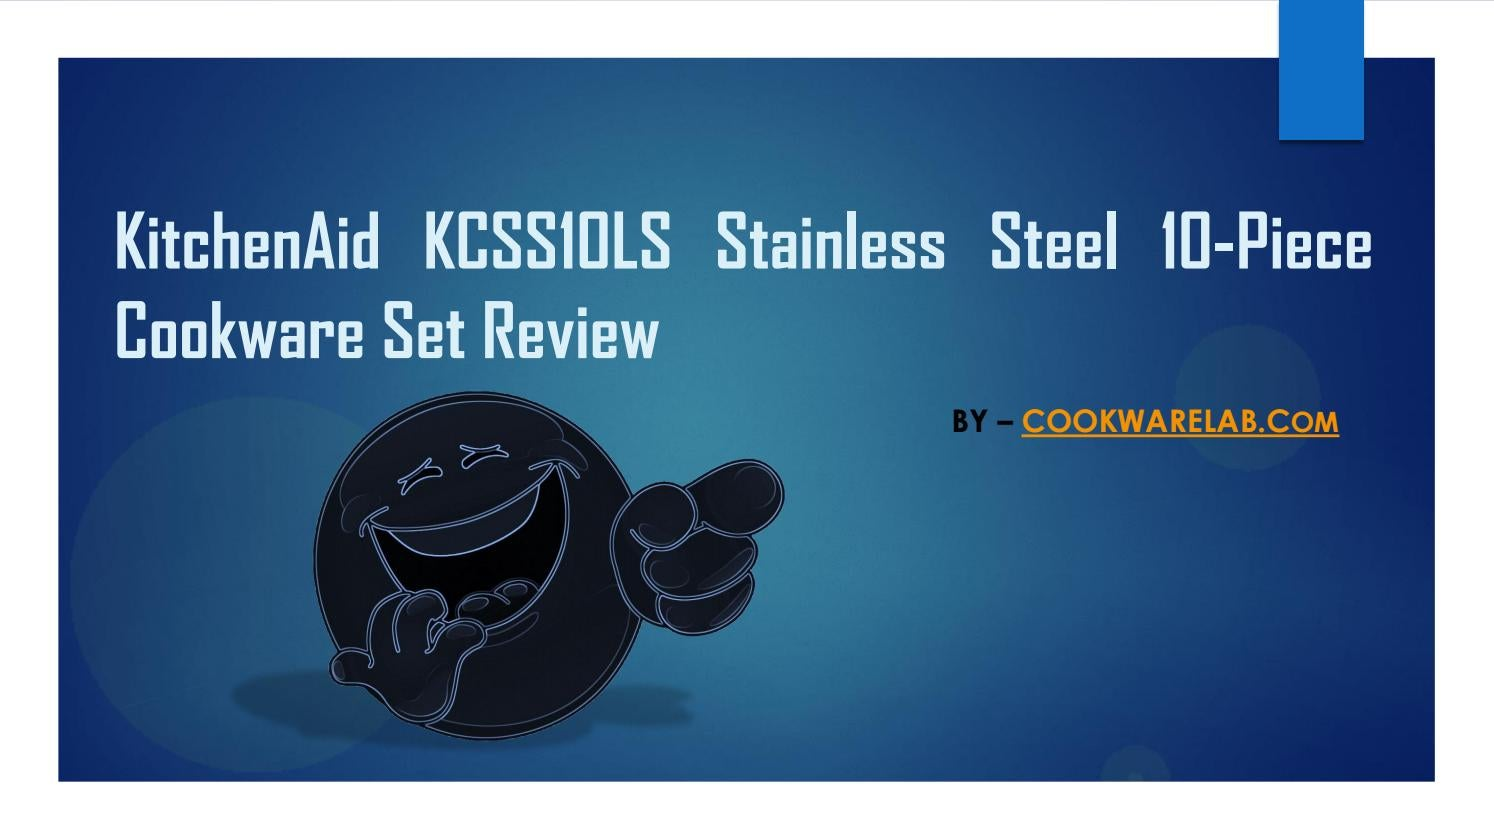 Kitchenaid kcss10ls stainless steel 10 piece cookware set review by ...